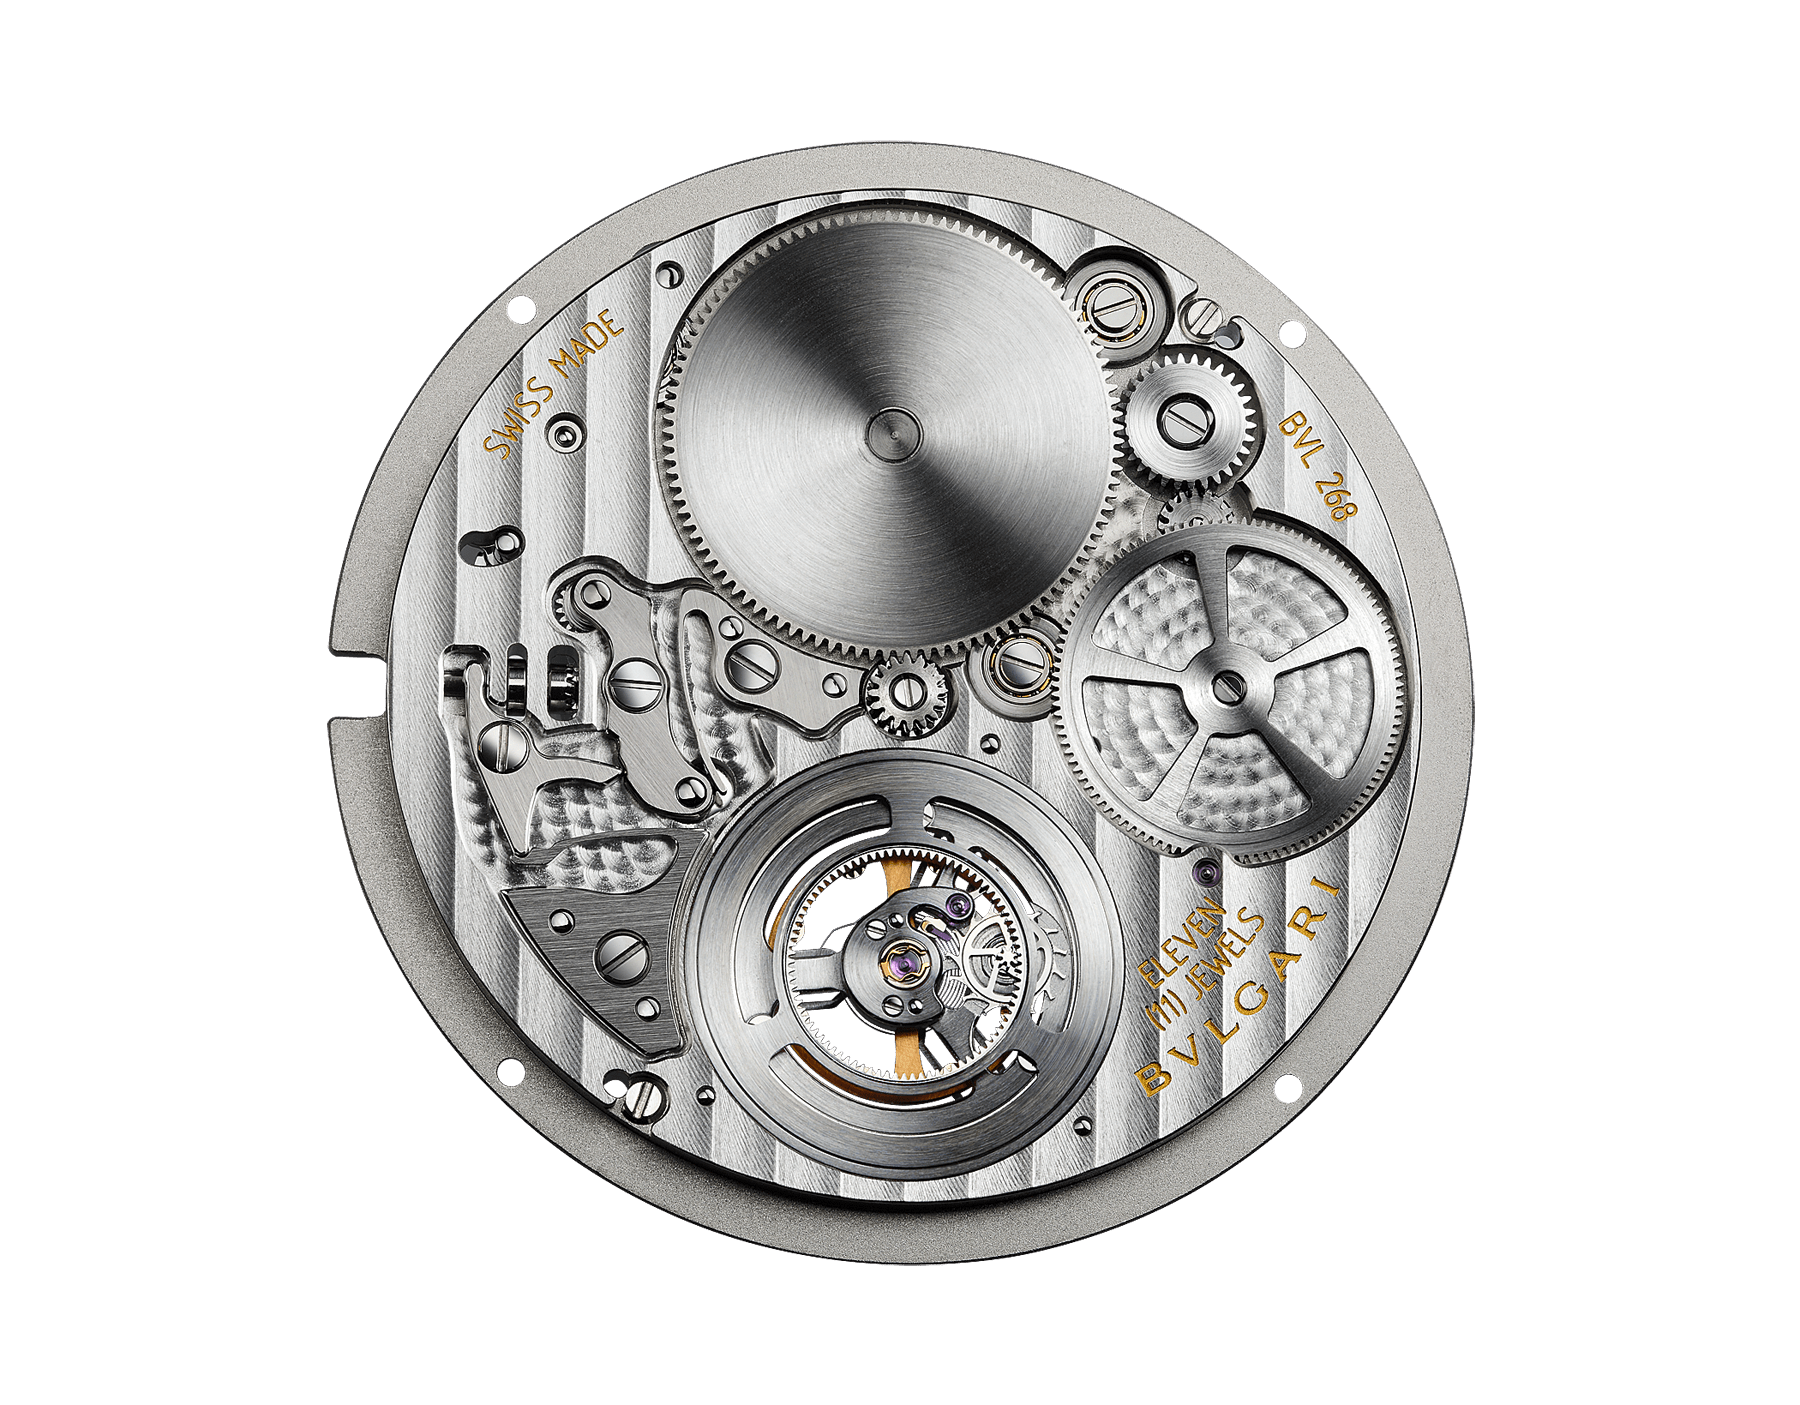 Orologio Octo Finissimo Tourbillon con movimento meccanico di manifattura ultrapiatto a carica manuale con cuscinetti a sfera, cassa in titanio con trattamento DLC (Diamond-Like Carbon), quadrante laccato nero con tourbillon a vista e cinturino in alligatore nero. 102560 image 3